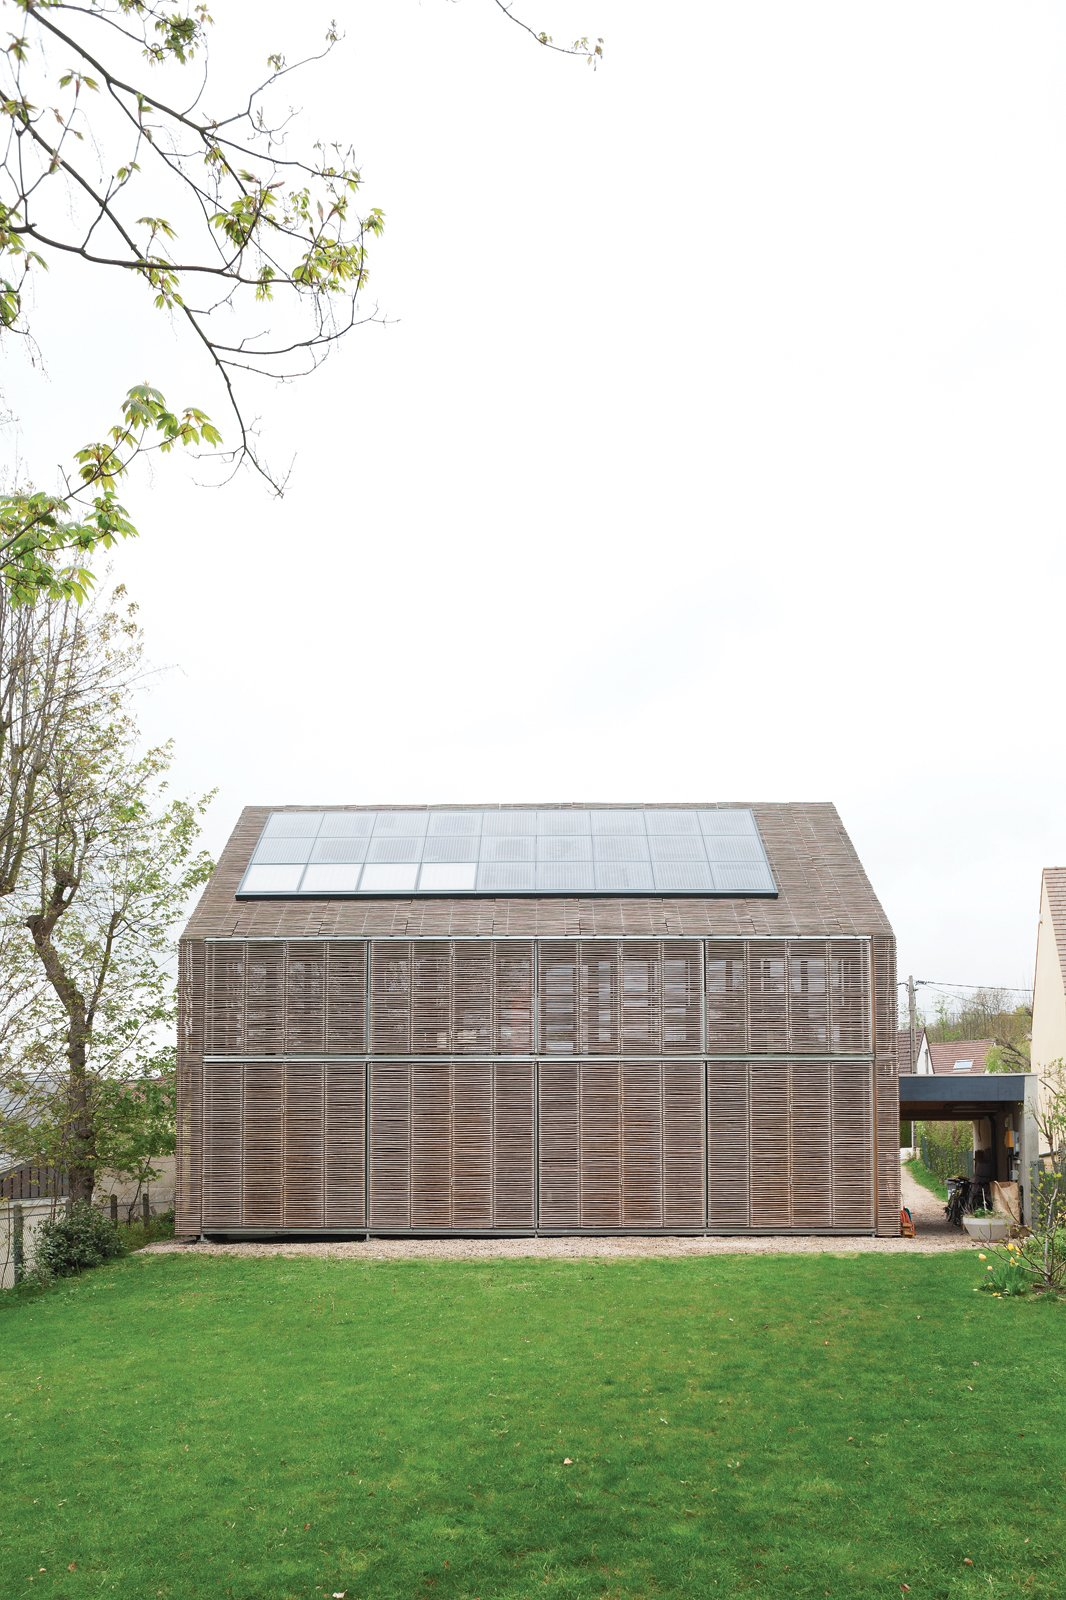 Passive ProgressiveStunning bamboo covers this house in Bessancourt, France, on all four sides, its lattice making up a striking set of adjustable screens that allow the residents to modify the facade to suit the weather. Photo by: Nicholas Calcott Passive Progressive - Photo 1 of 8